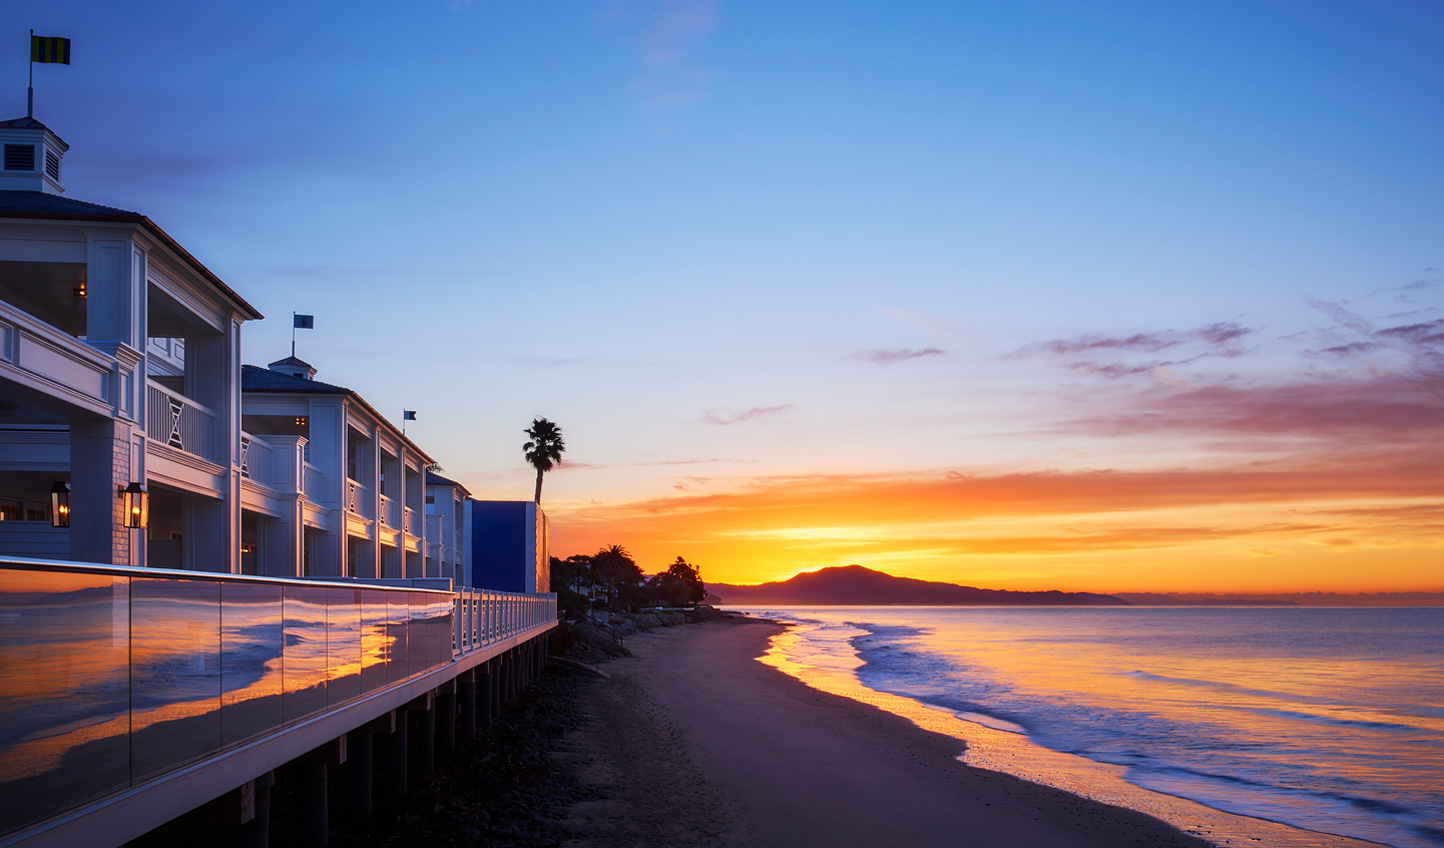 Rosewood Miramar Beach, Montecito, Santa Barbara | Luxury Hotels & Resorts in the USA